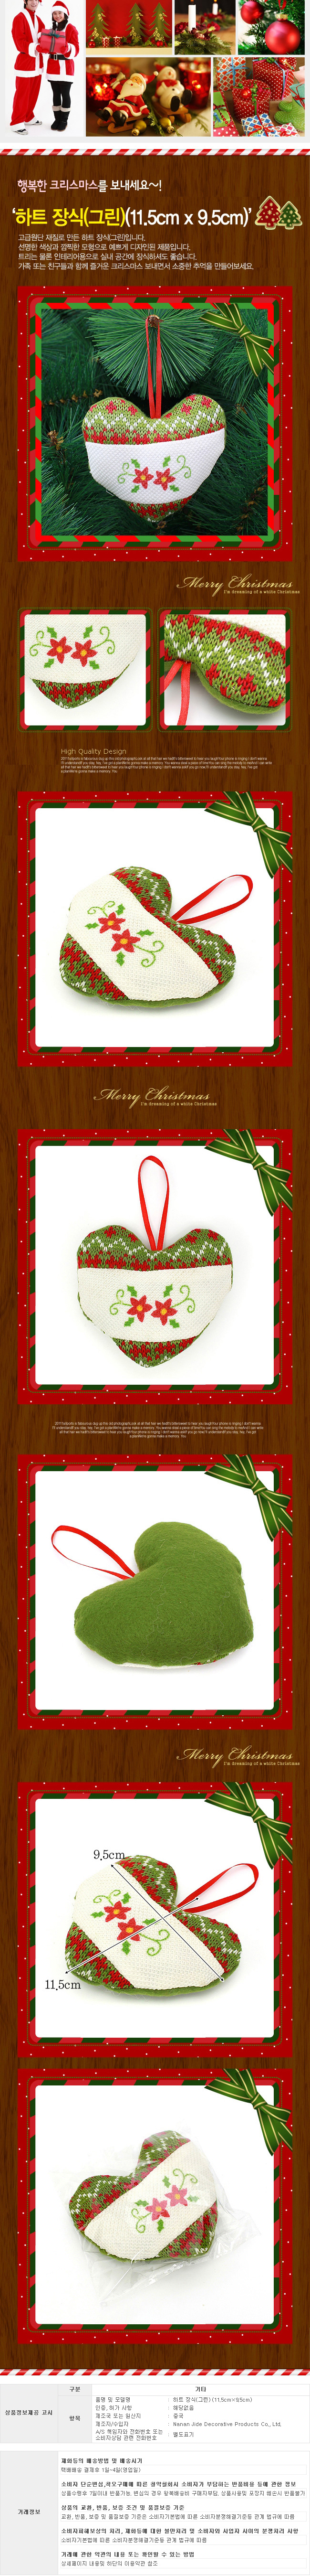 [ WINEQOK ] Christmas Goods / Heart green decoration.